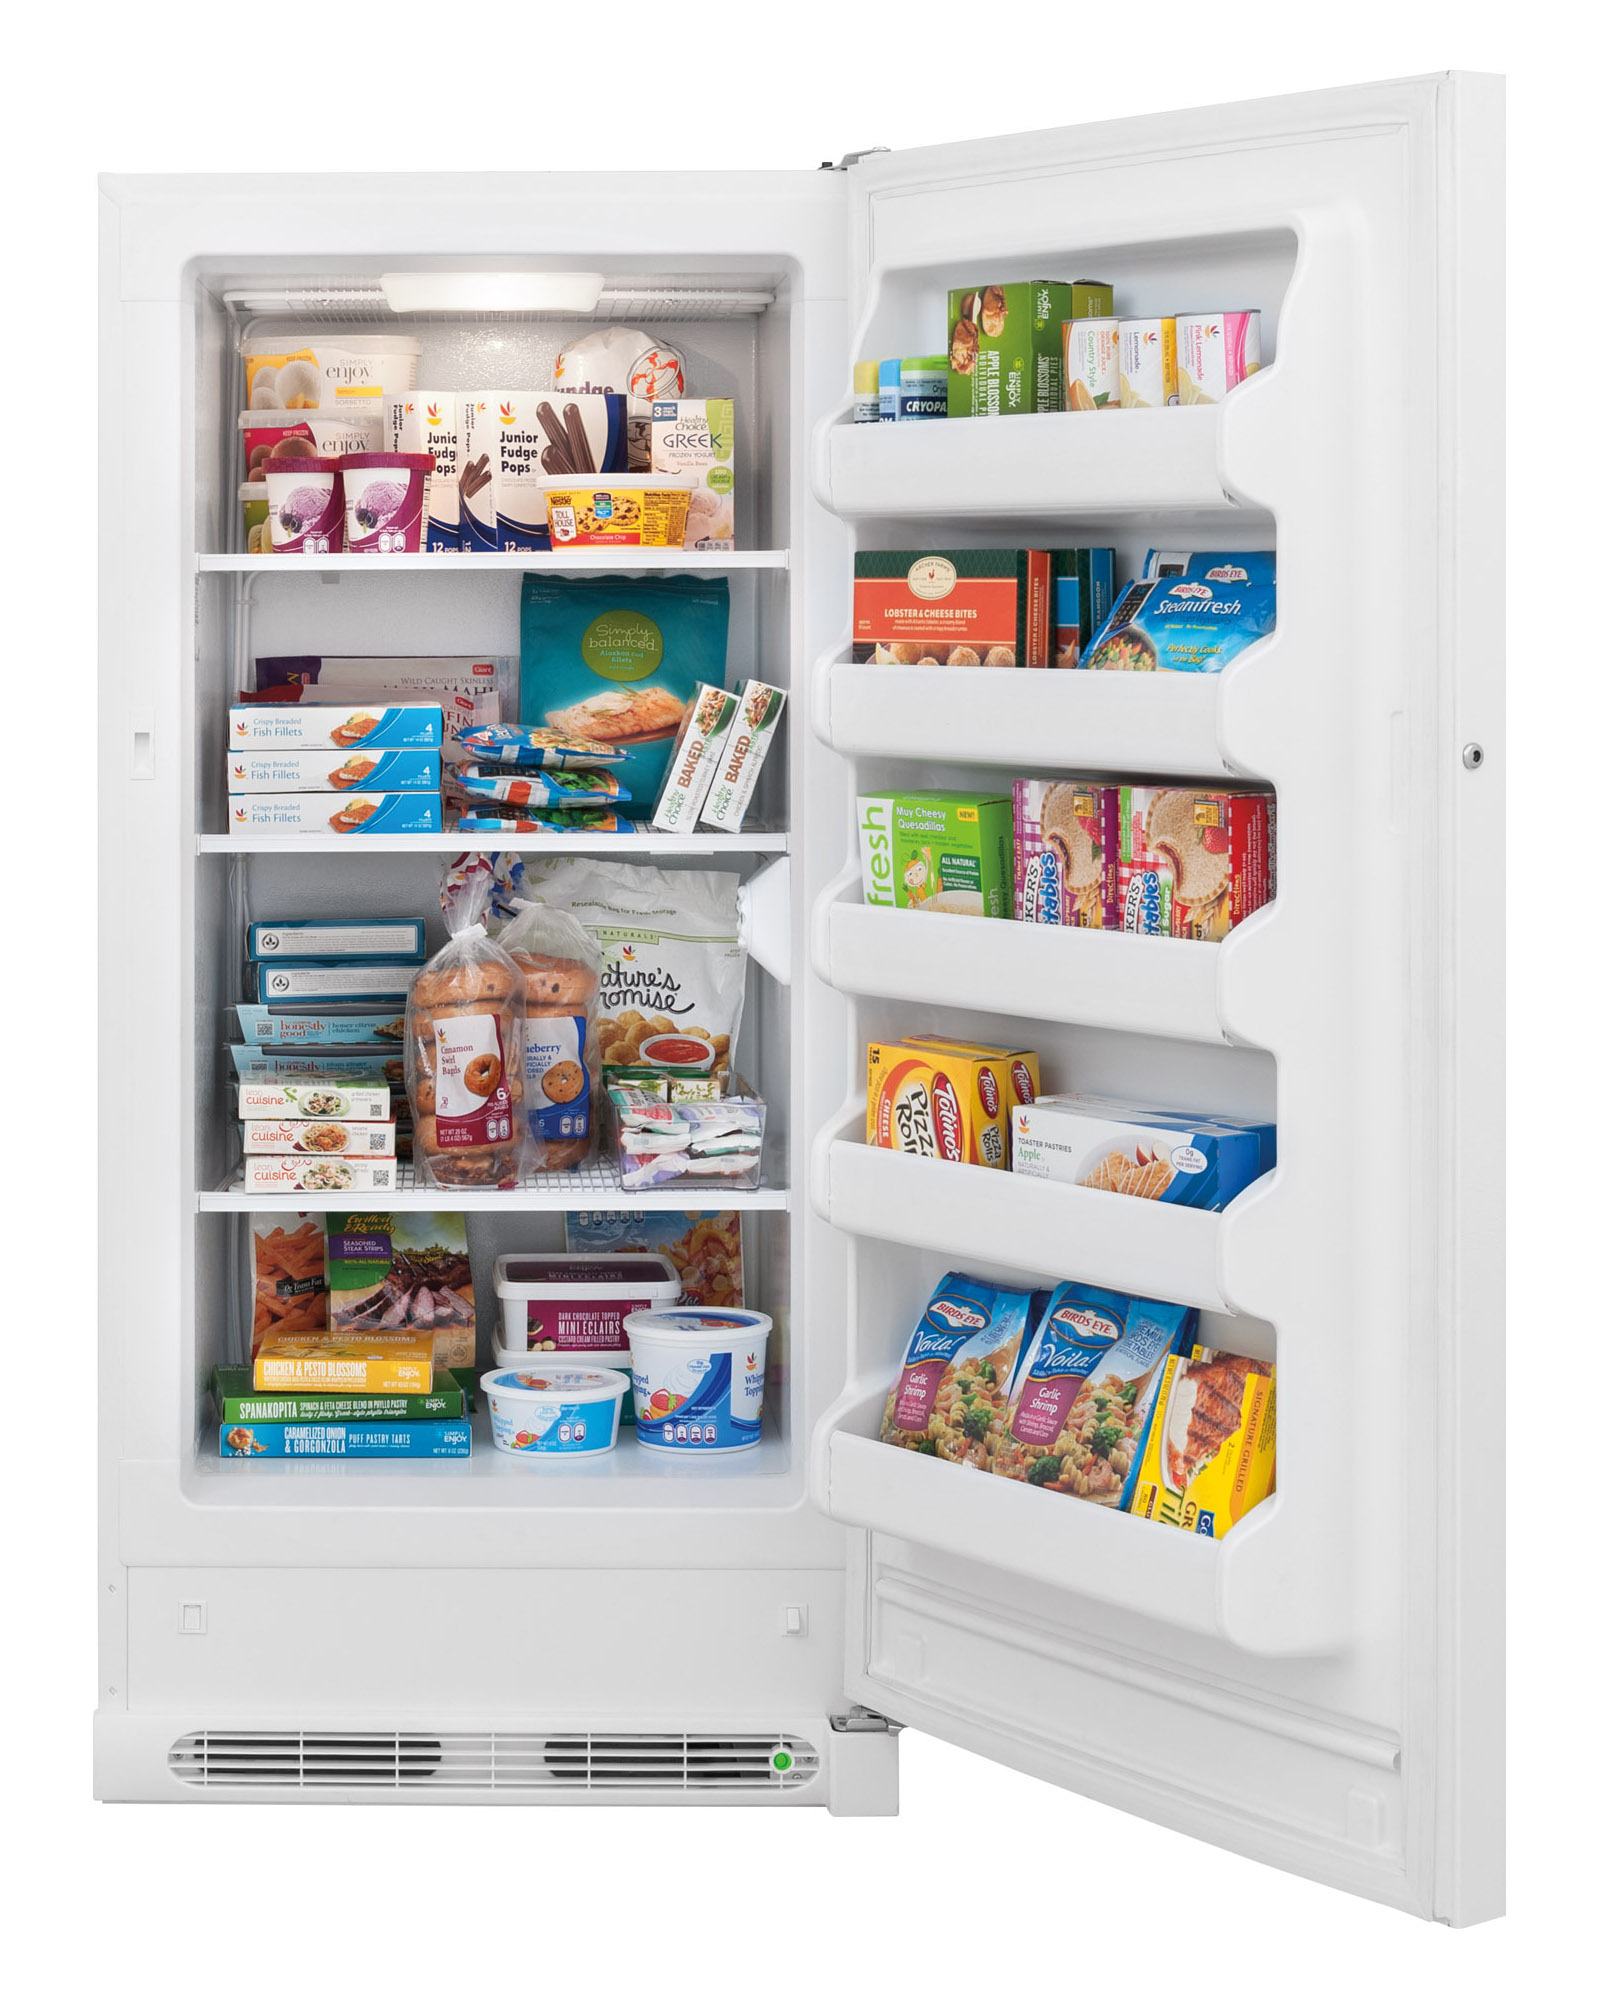 Frigidaire FFFU14M1QW 14.4 cu. ft. Upright Freezer - White